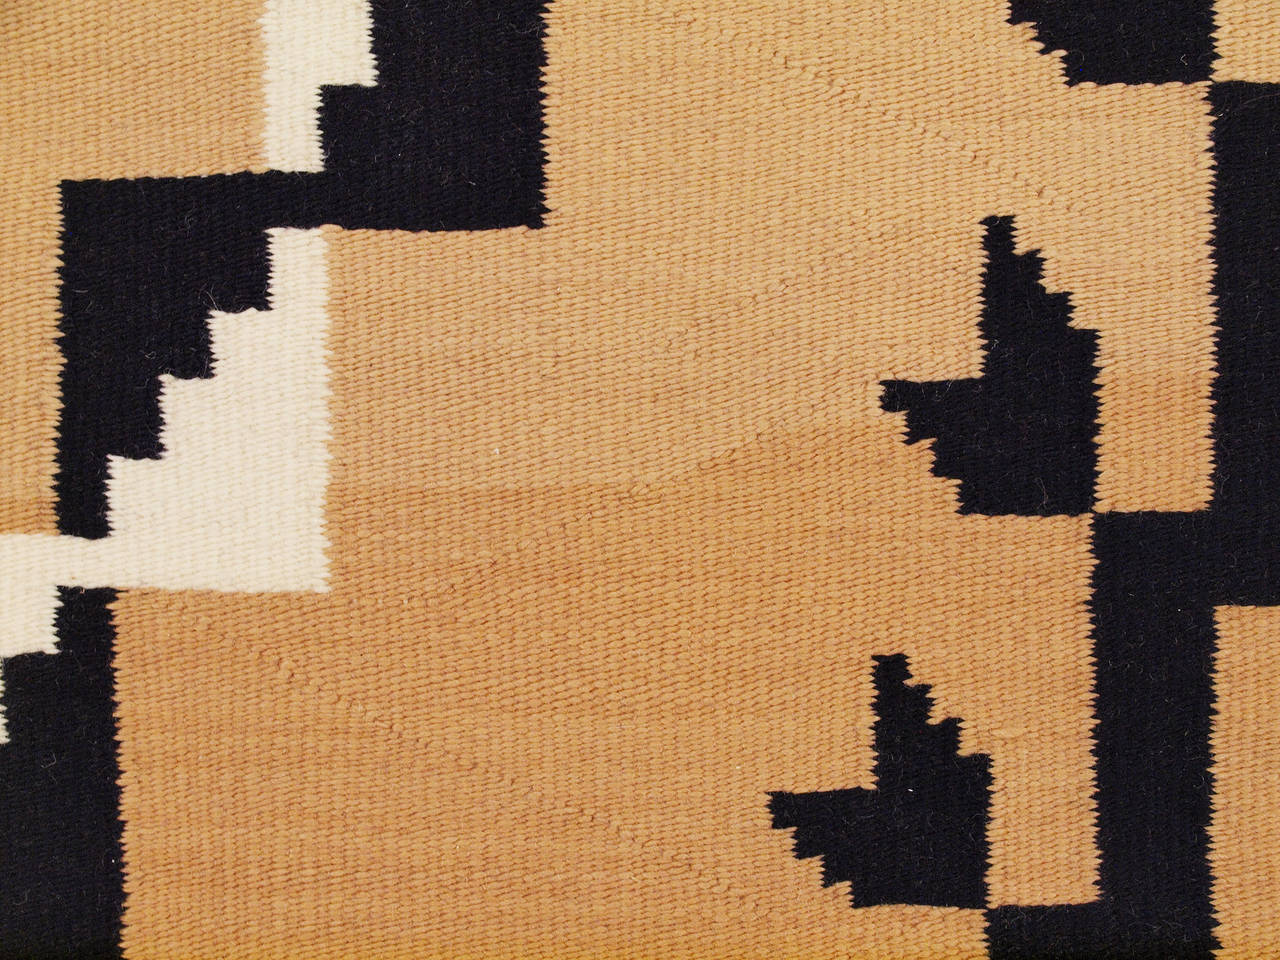 Hand-Woven Vintage Navajo Rug, Crystal Trading Post, Mid-20th Century For Sale